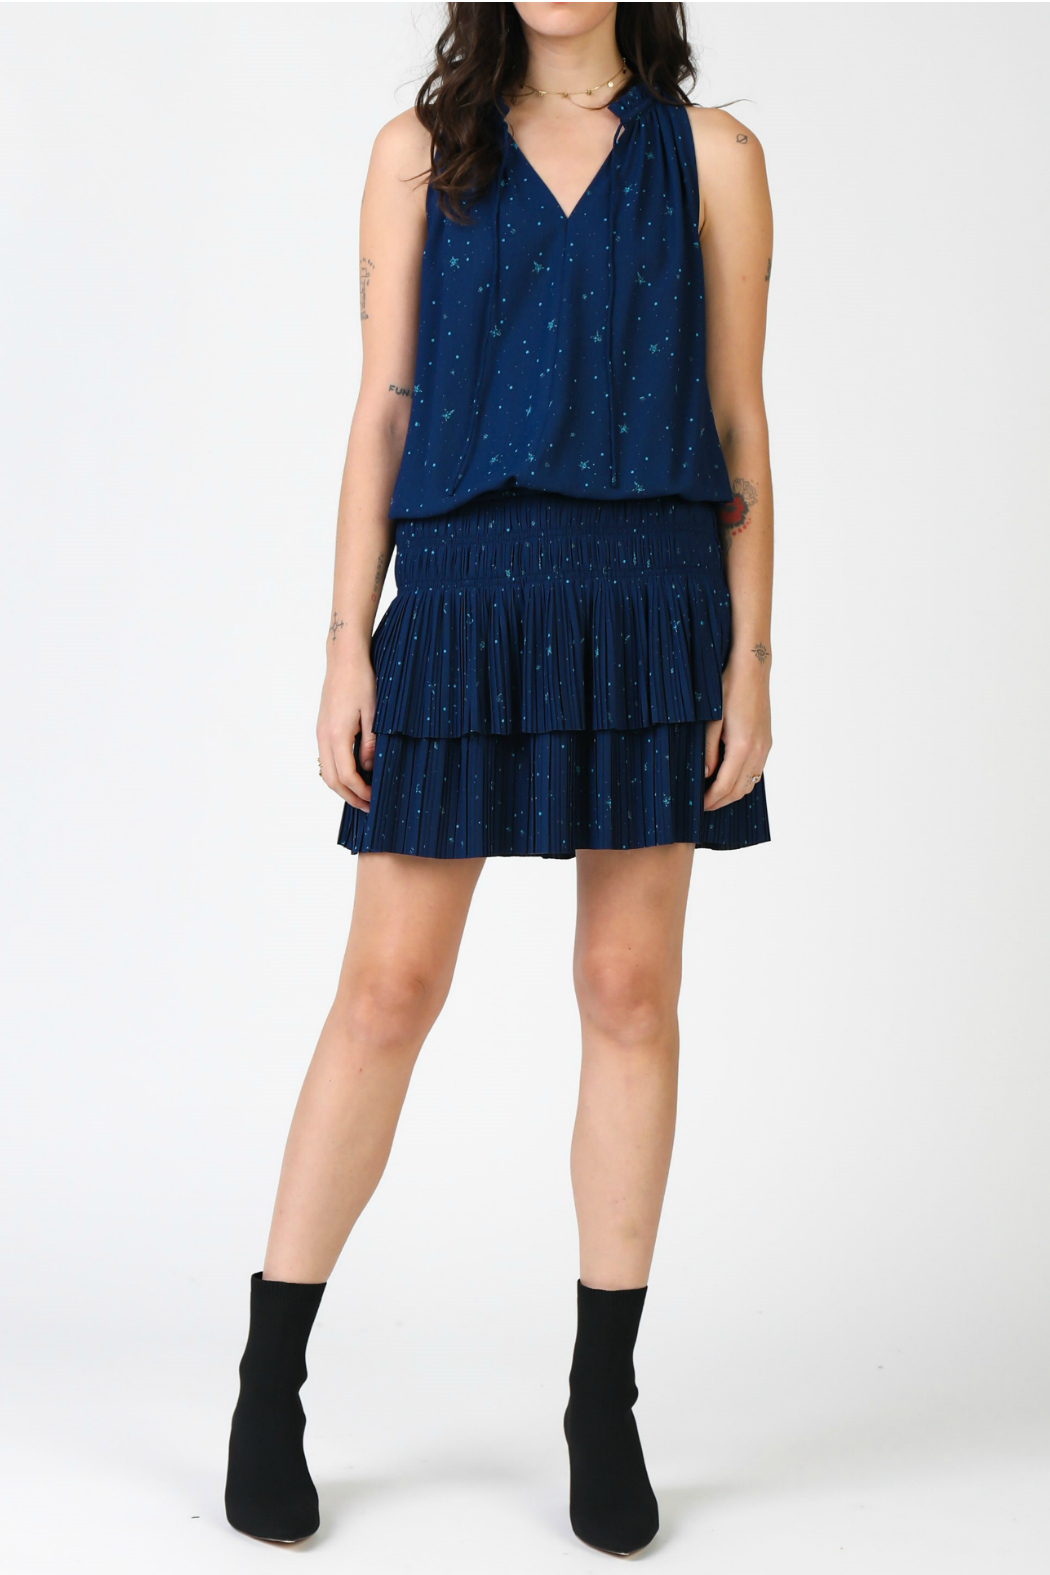 Current Air Star printed mini dress with pleated skirt - Main Image